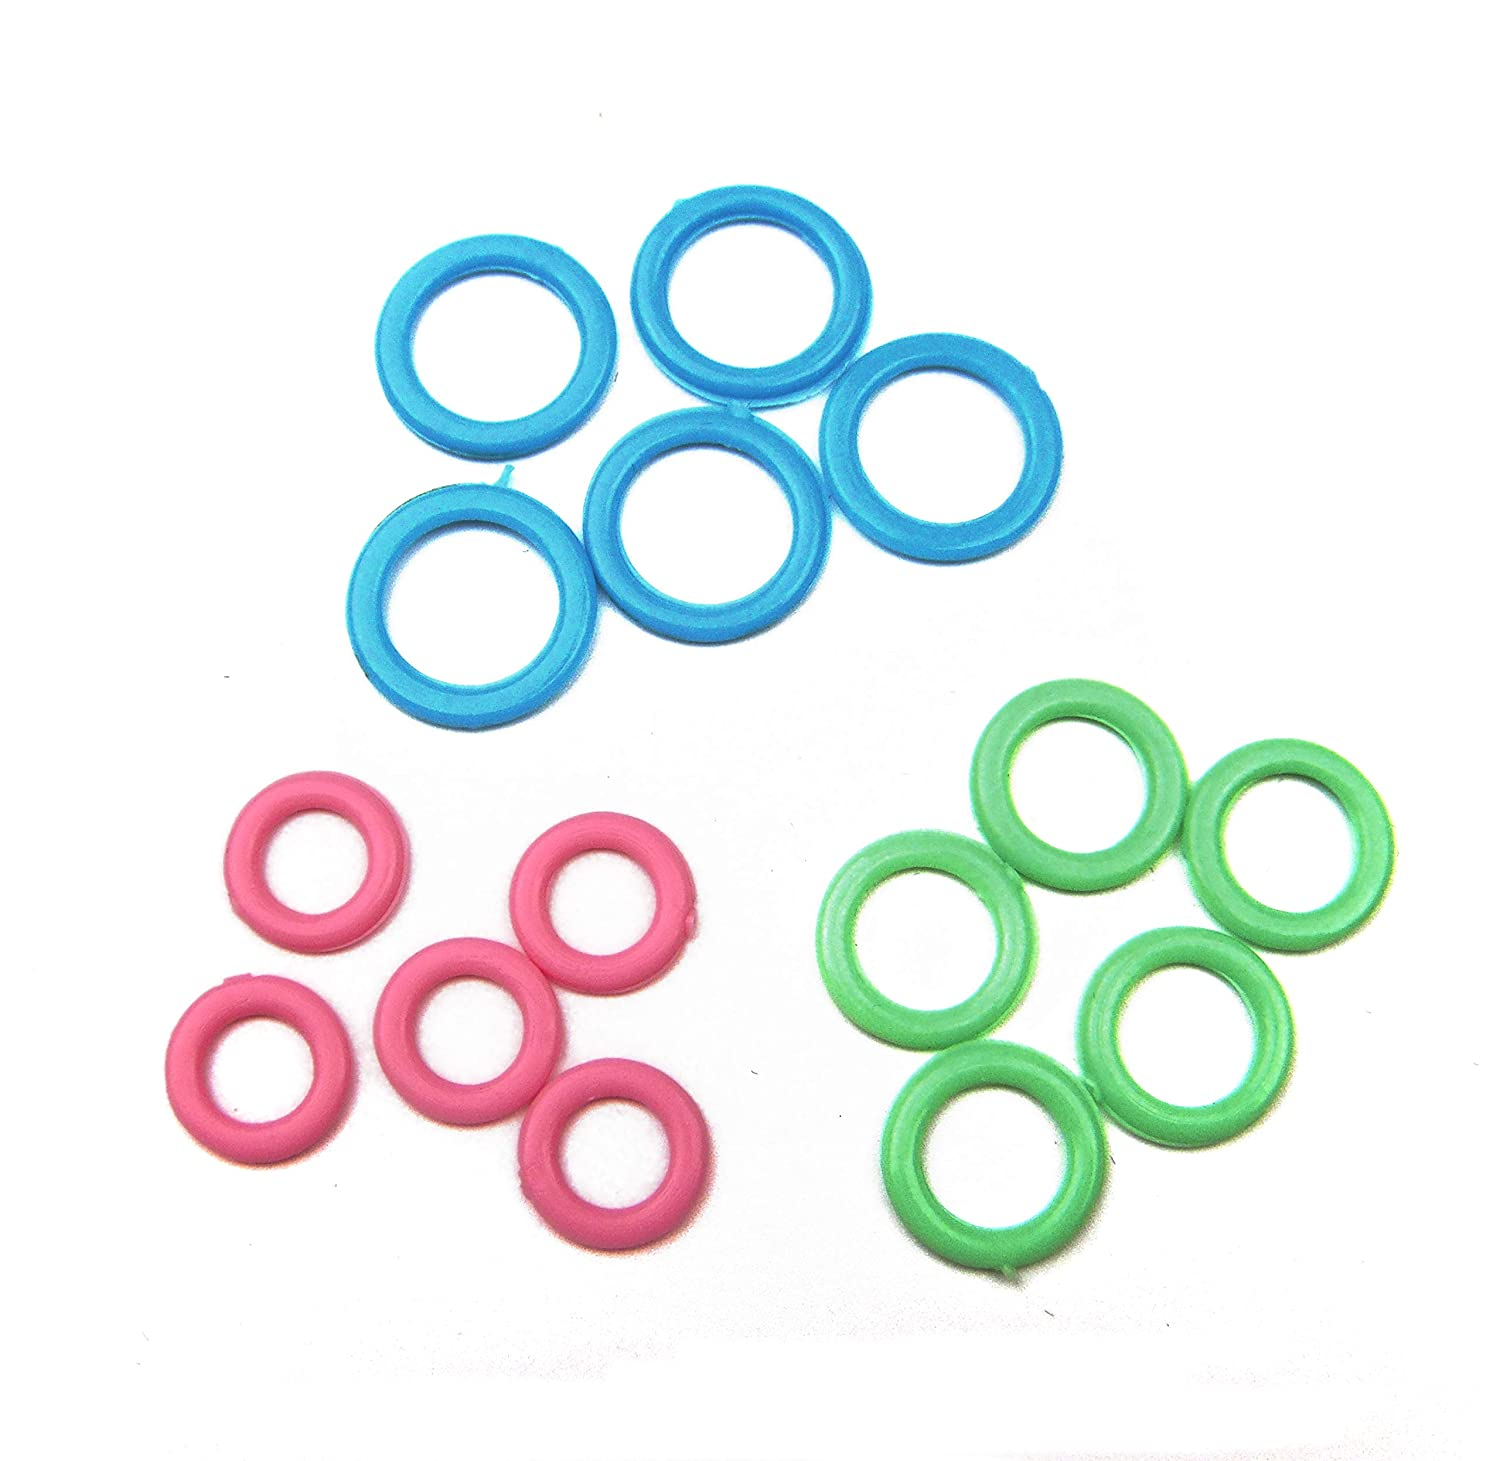 Mixed Size-60pcs ALL in ONE Colorful Stitch Marker Rings Mixed 3 Sizes for Knitting DIY Craft